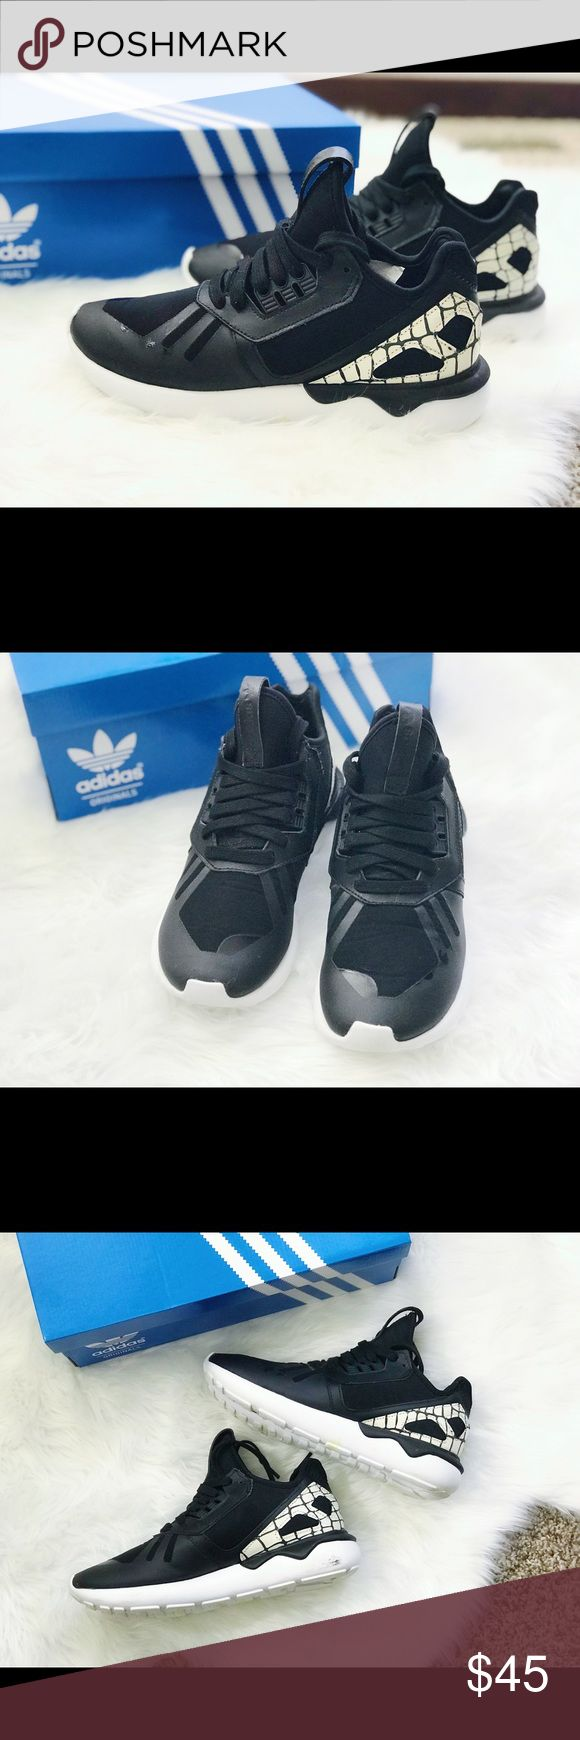 Adidas Originals Tubular Runner Women Super comfy and stylish sneaker Lightly worn in very good condition A few flaws shown in pics Size women's 6 adidas Shoes Athletic Shoes